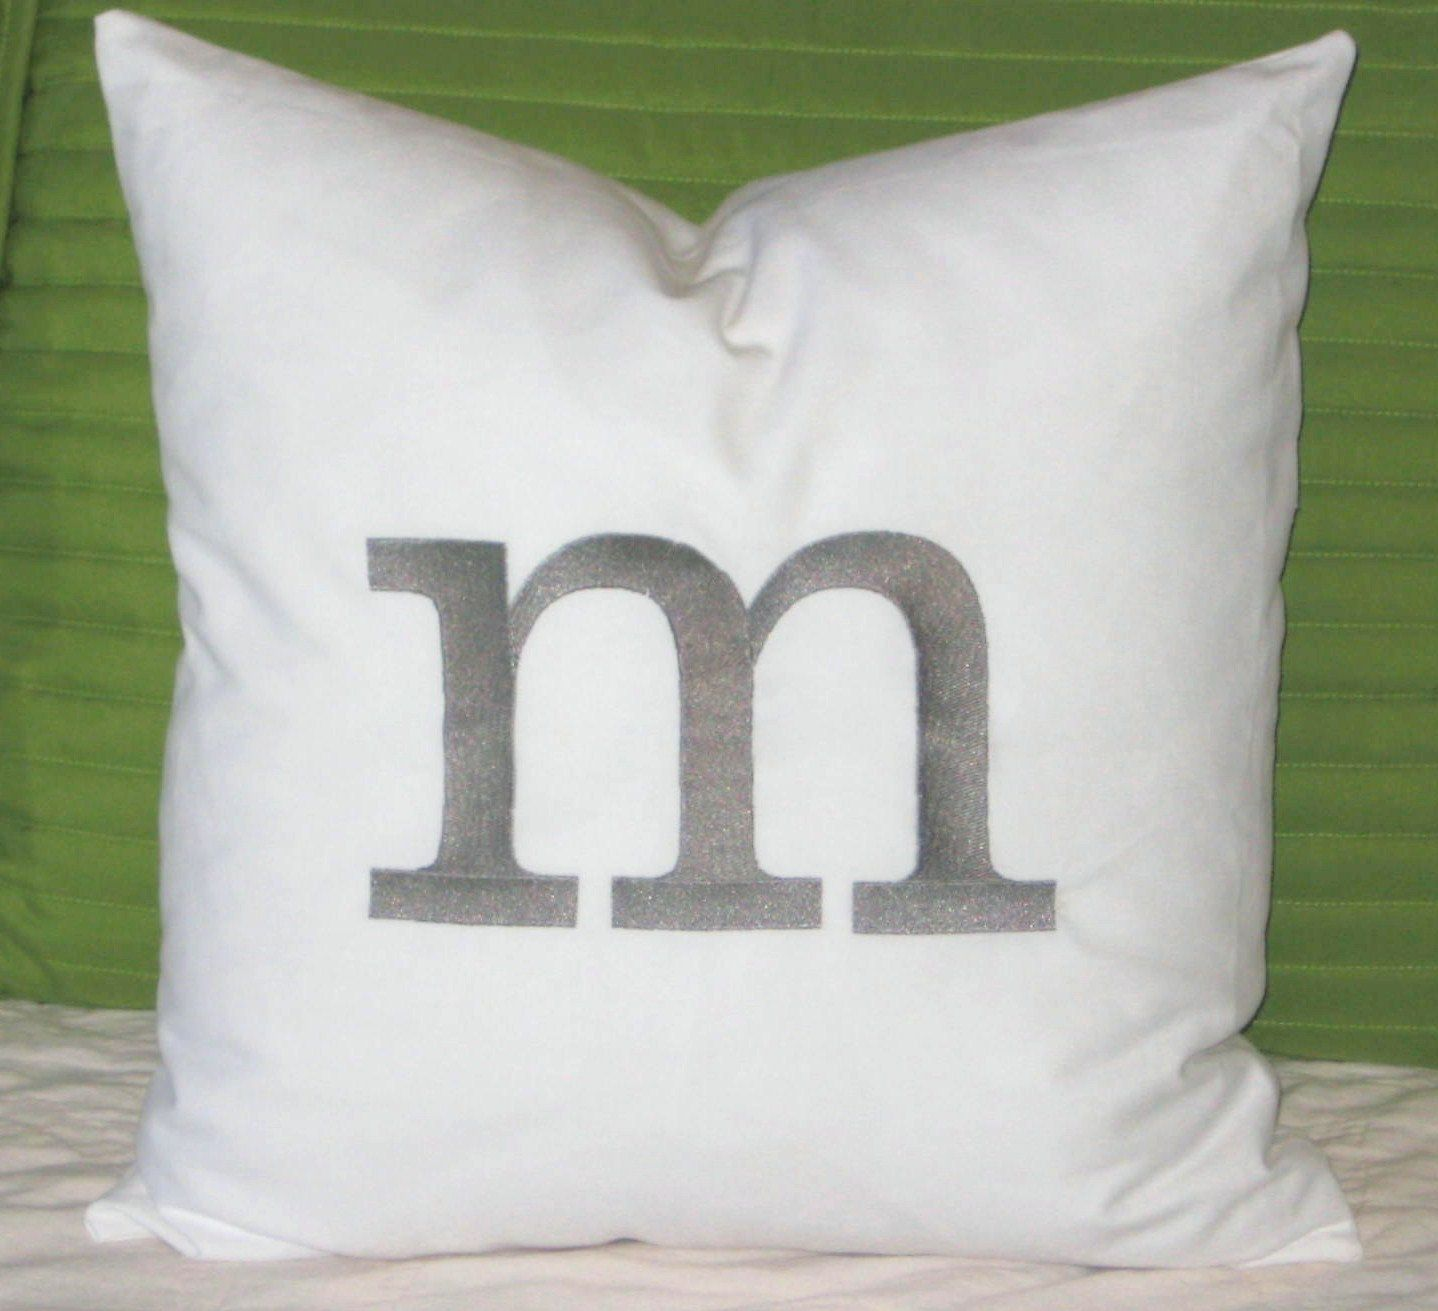 "Initial Pillow Covers Inspiration Personalized Initial Pillow Cover 18"" X 18"" White Cotton Fabric With 2018"